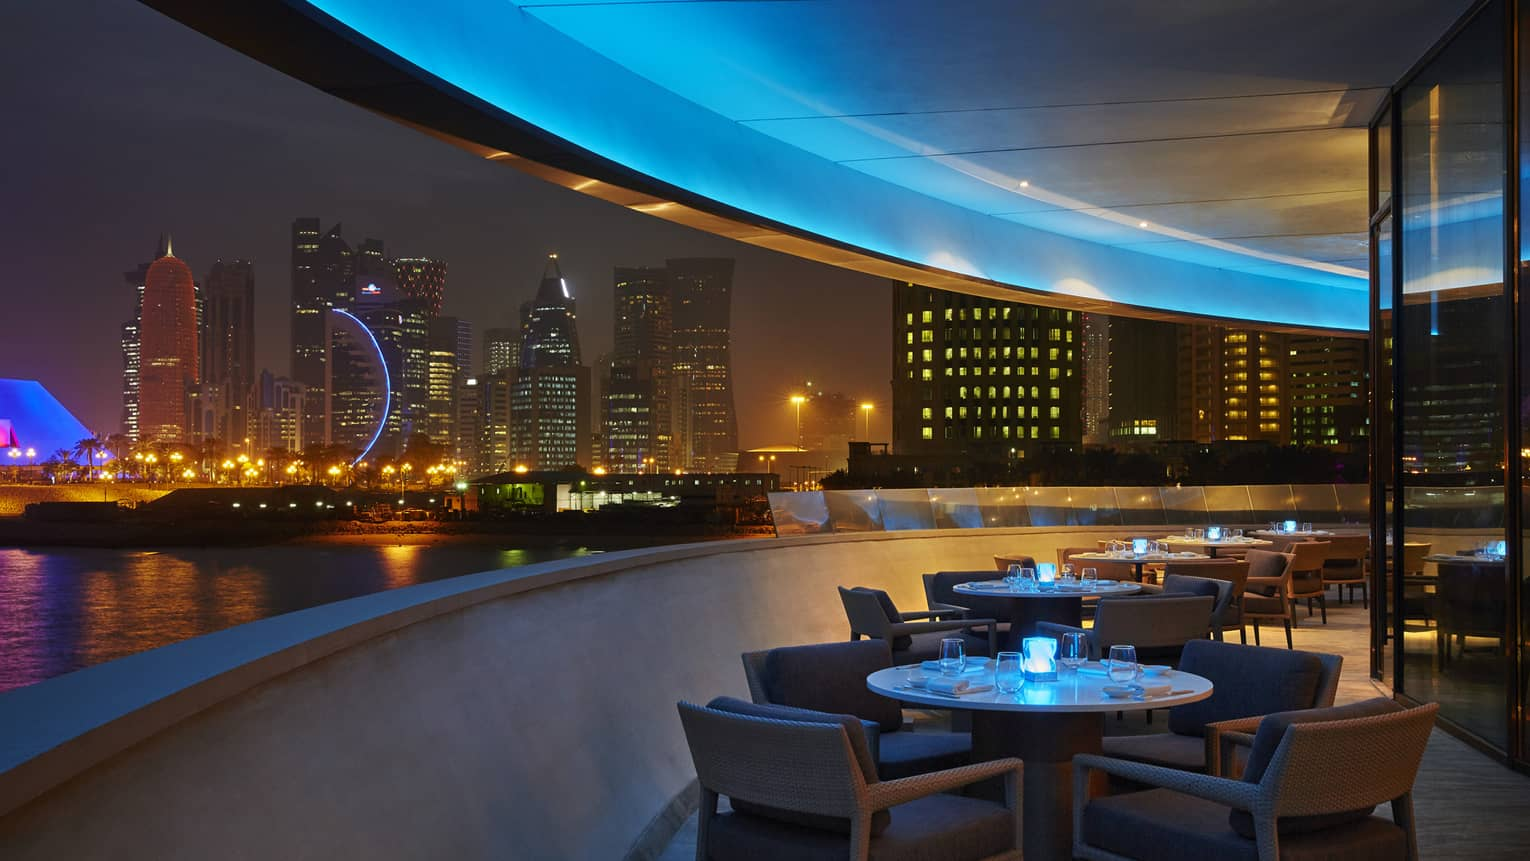 Curved Nobu restaurant patio with dining tables at night, skyline views, blue lights